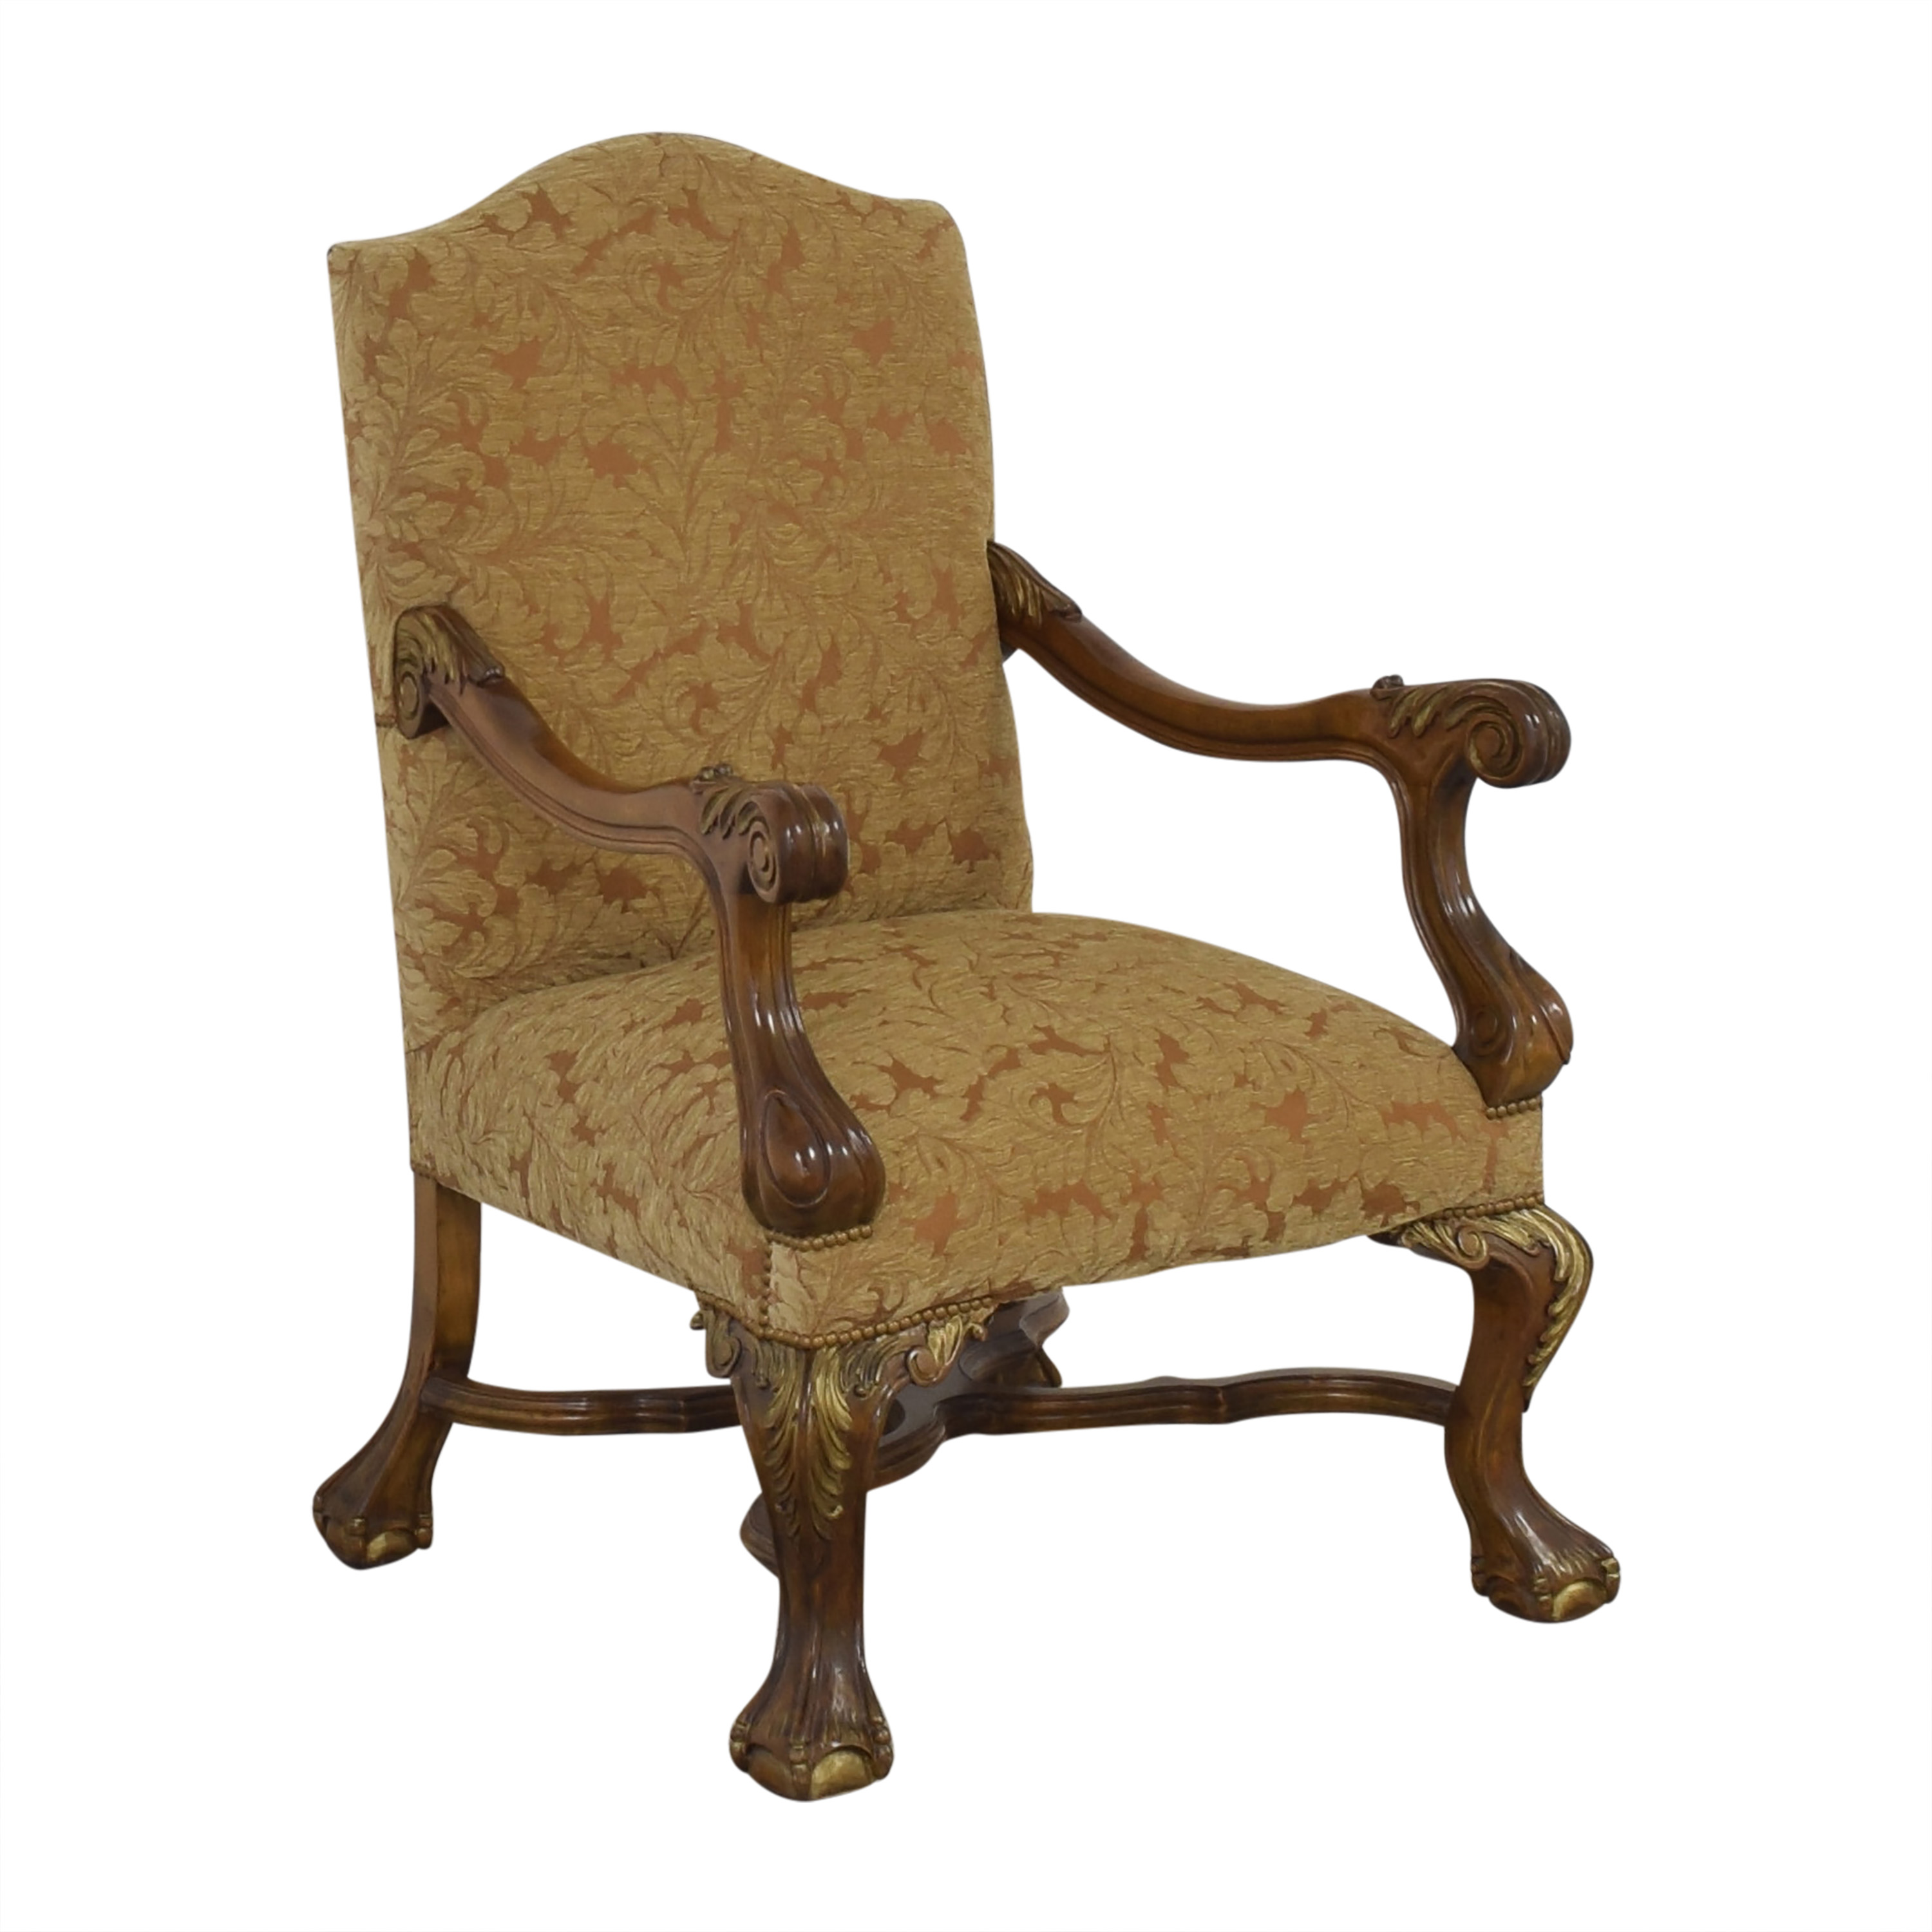 Vintage Upholsted Armchair ct